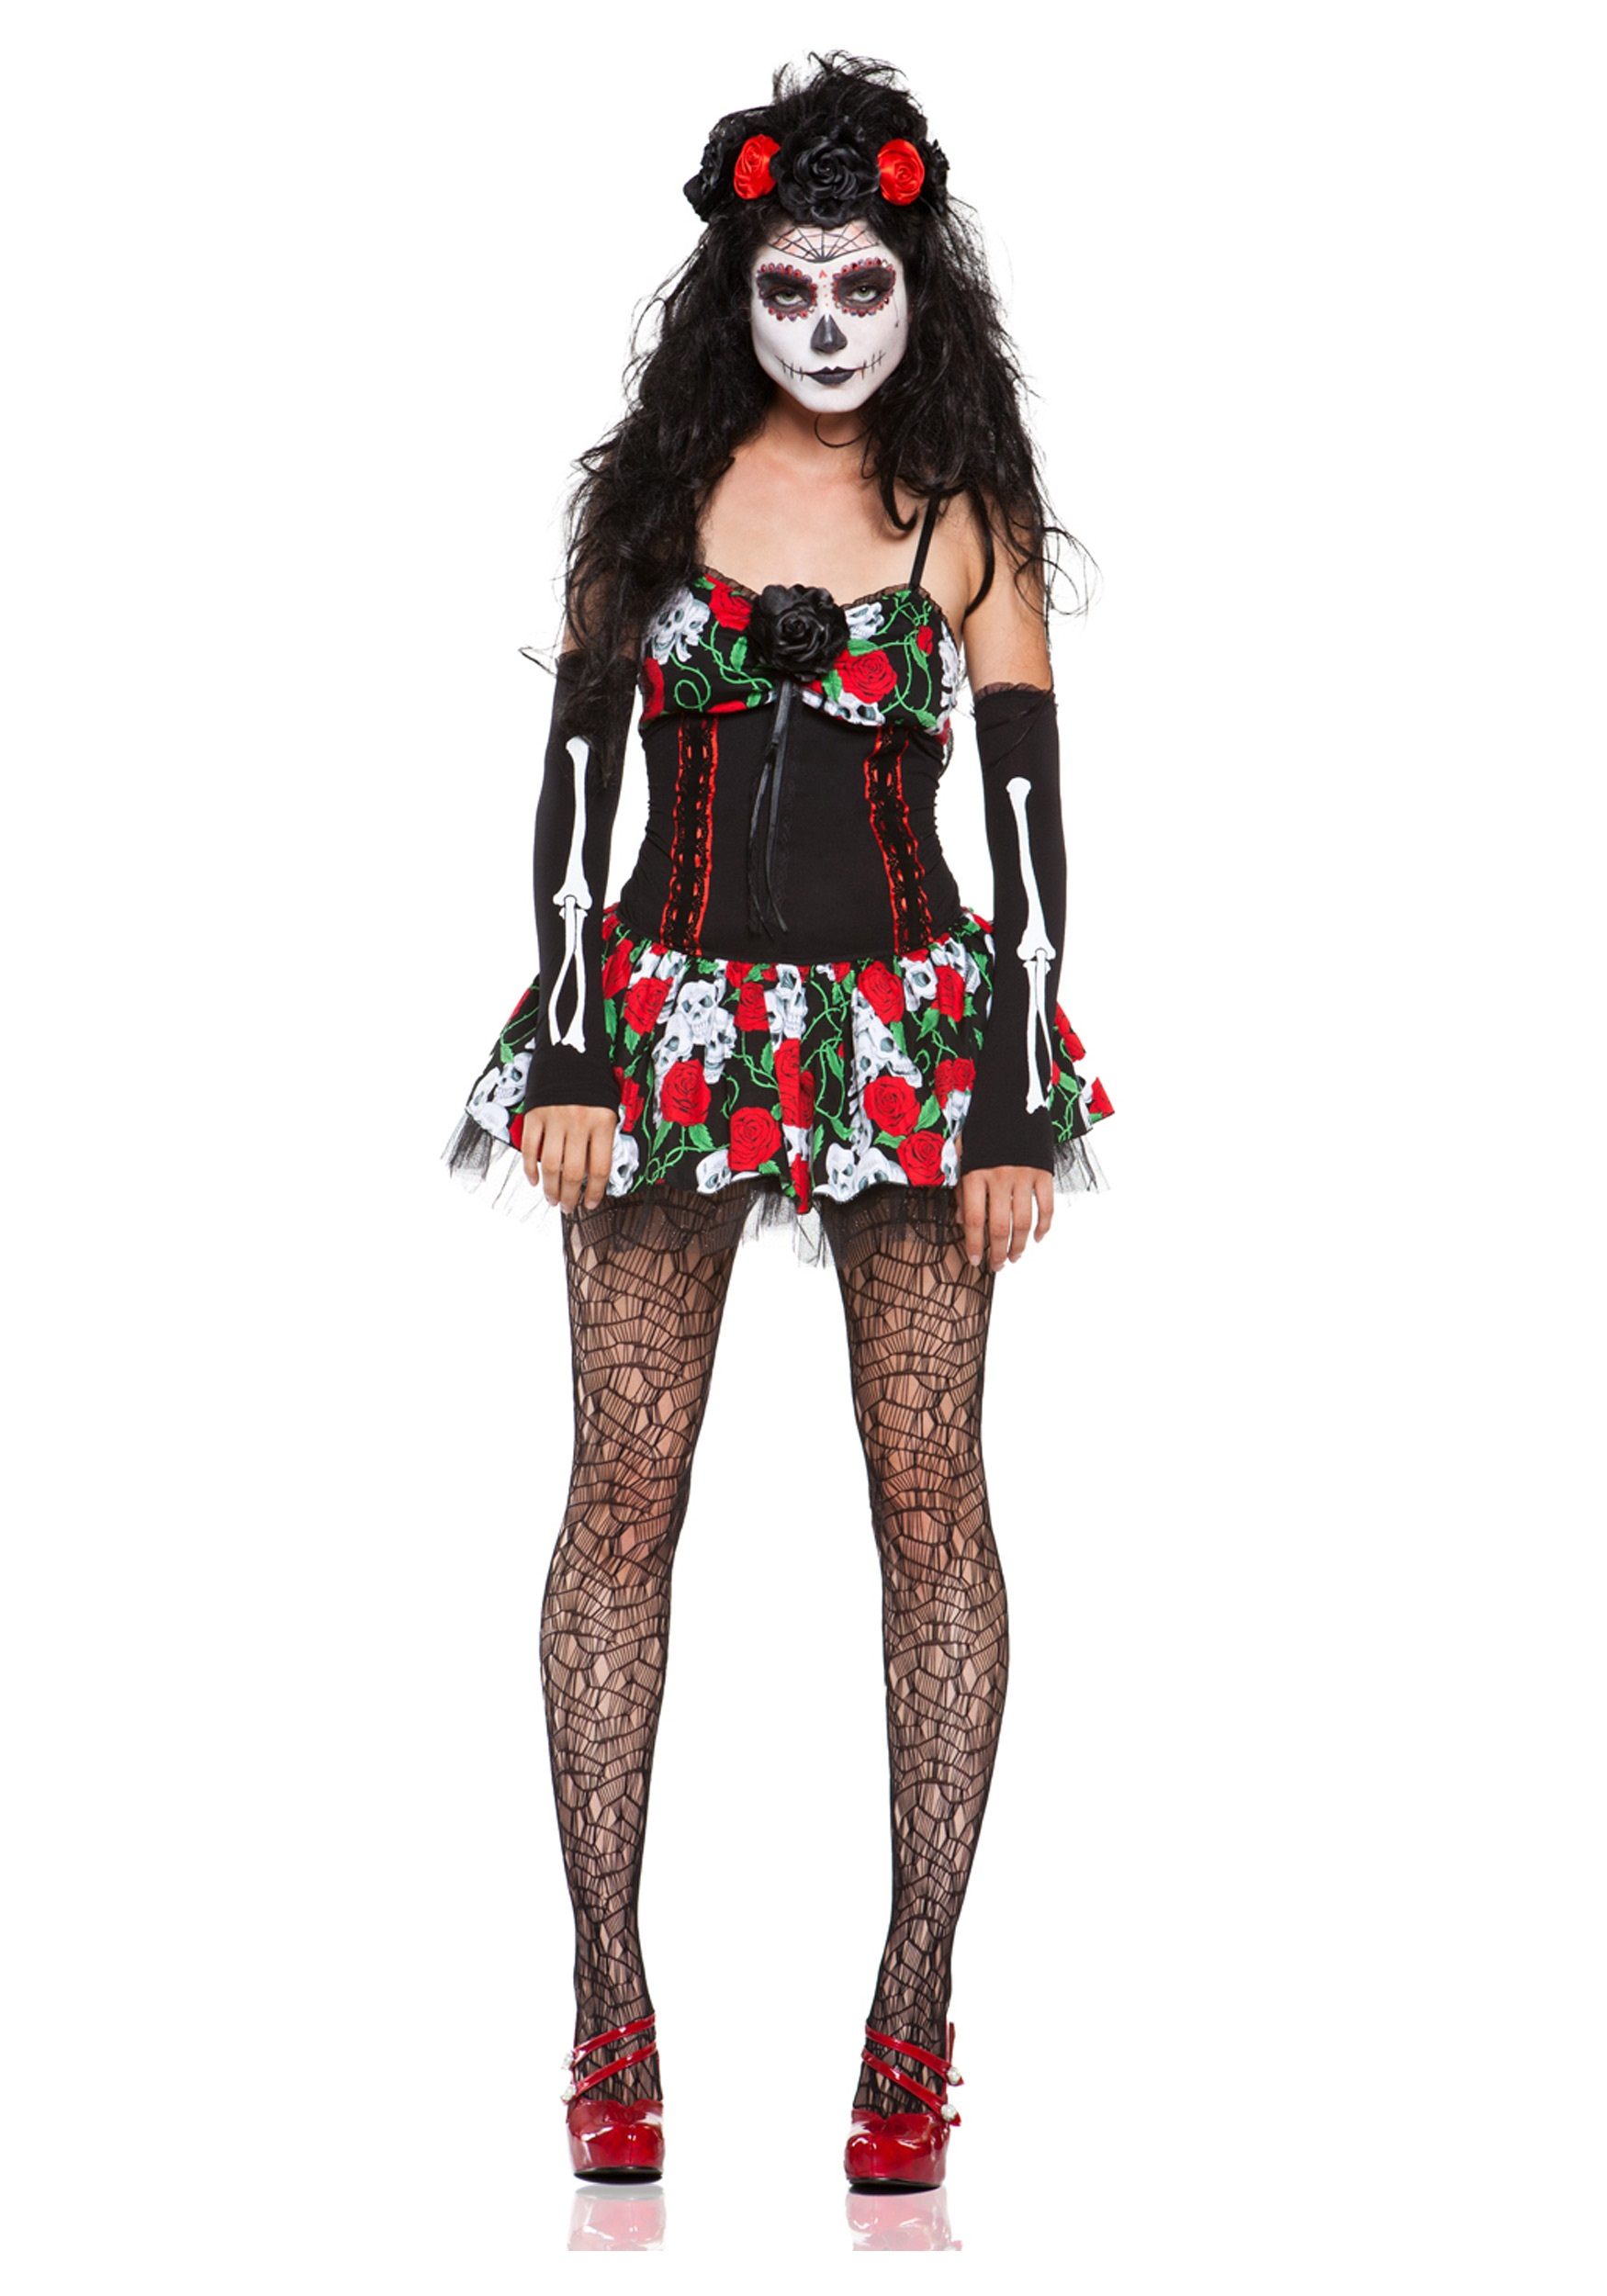 Here's some sexy halloween costume ideas for women